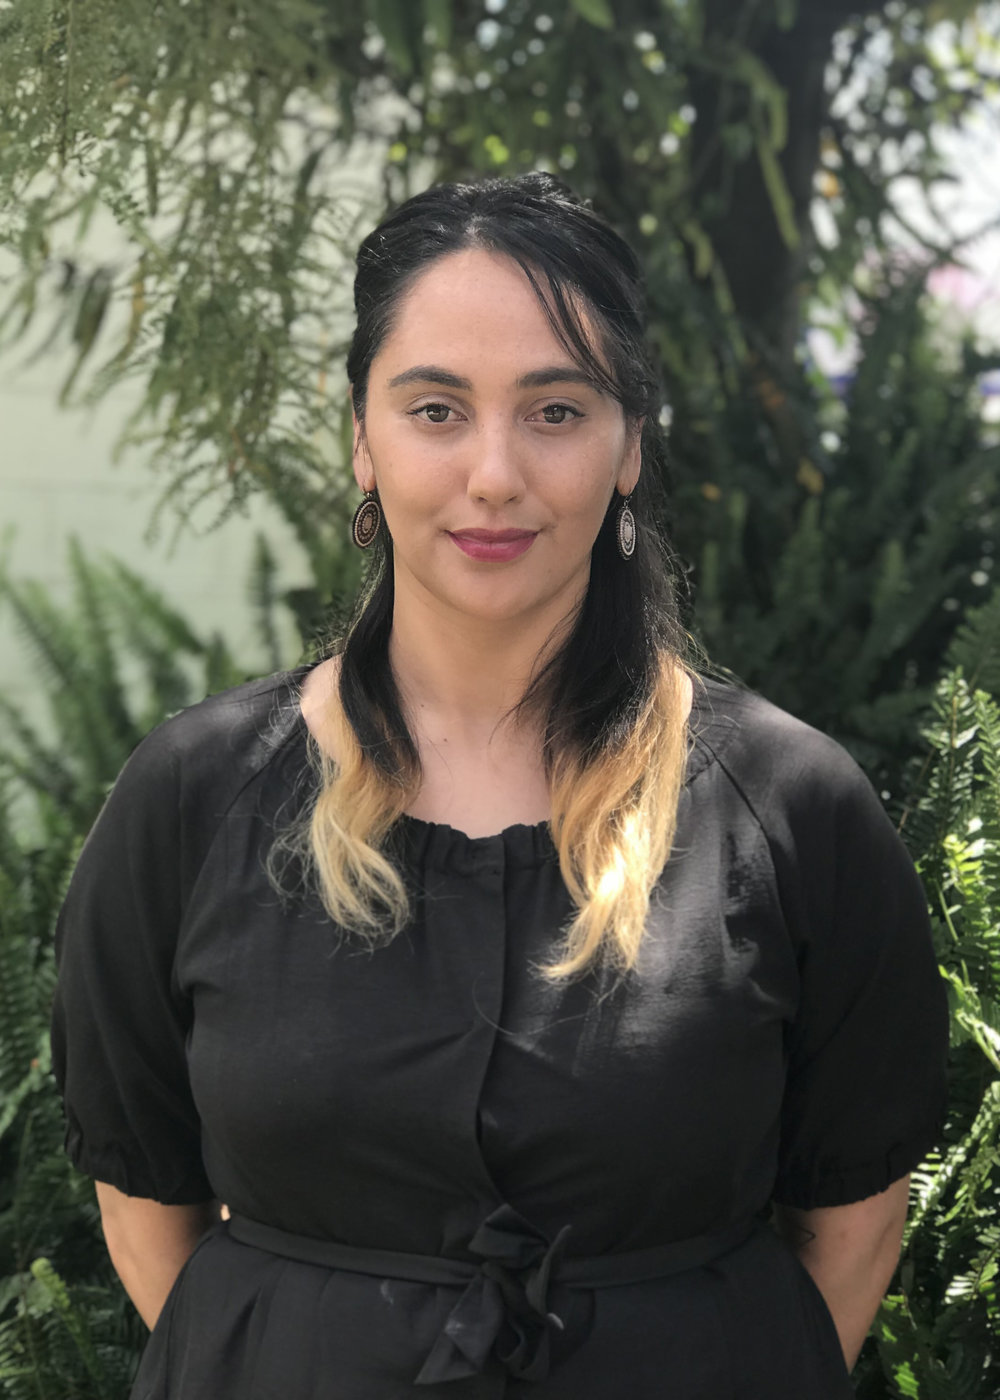 Marisha Wilson - SOCIAL WORKERKia oraKo Marisha toku ingoa.I love my mahi as a Social worker /funding officer. This is not a job to me, it is a passion.I graduated in 2015 from Te Wananga o Aotearoa with a Bachelor of Social Work. I am now working towards my Masters in Indigenous Studies, currently writing my thesis on the kaupapa 'Housing deficit affecting Maori families in NZ', and hoping to finish mid way 2019.